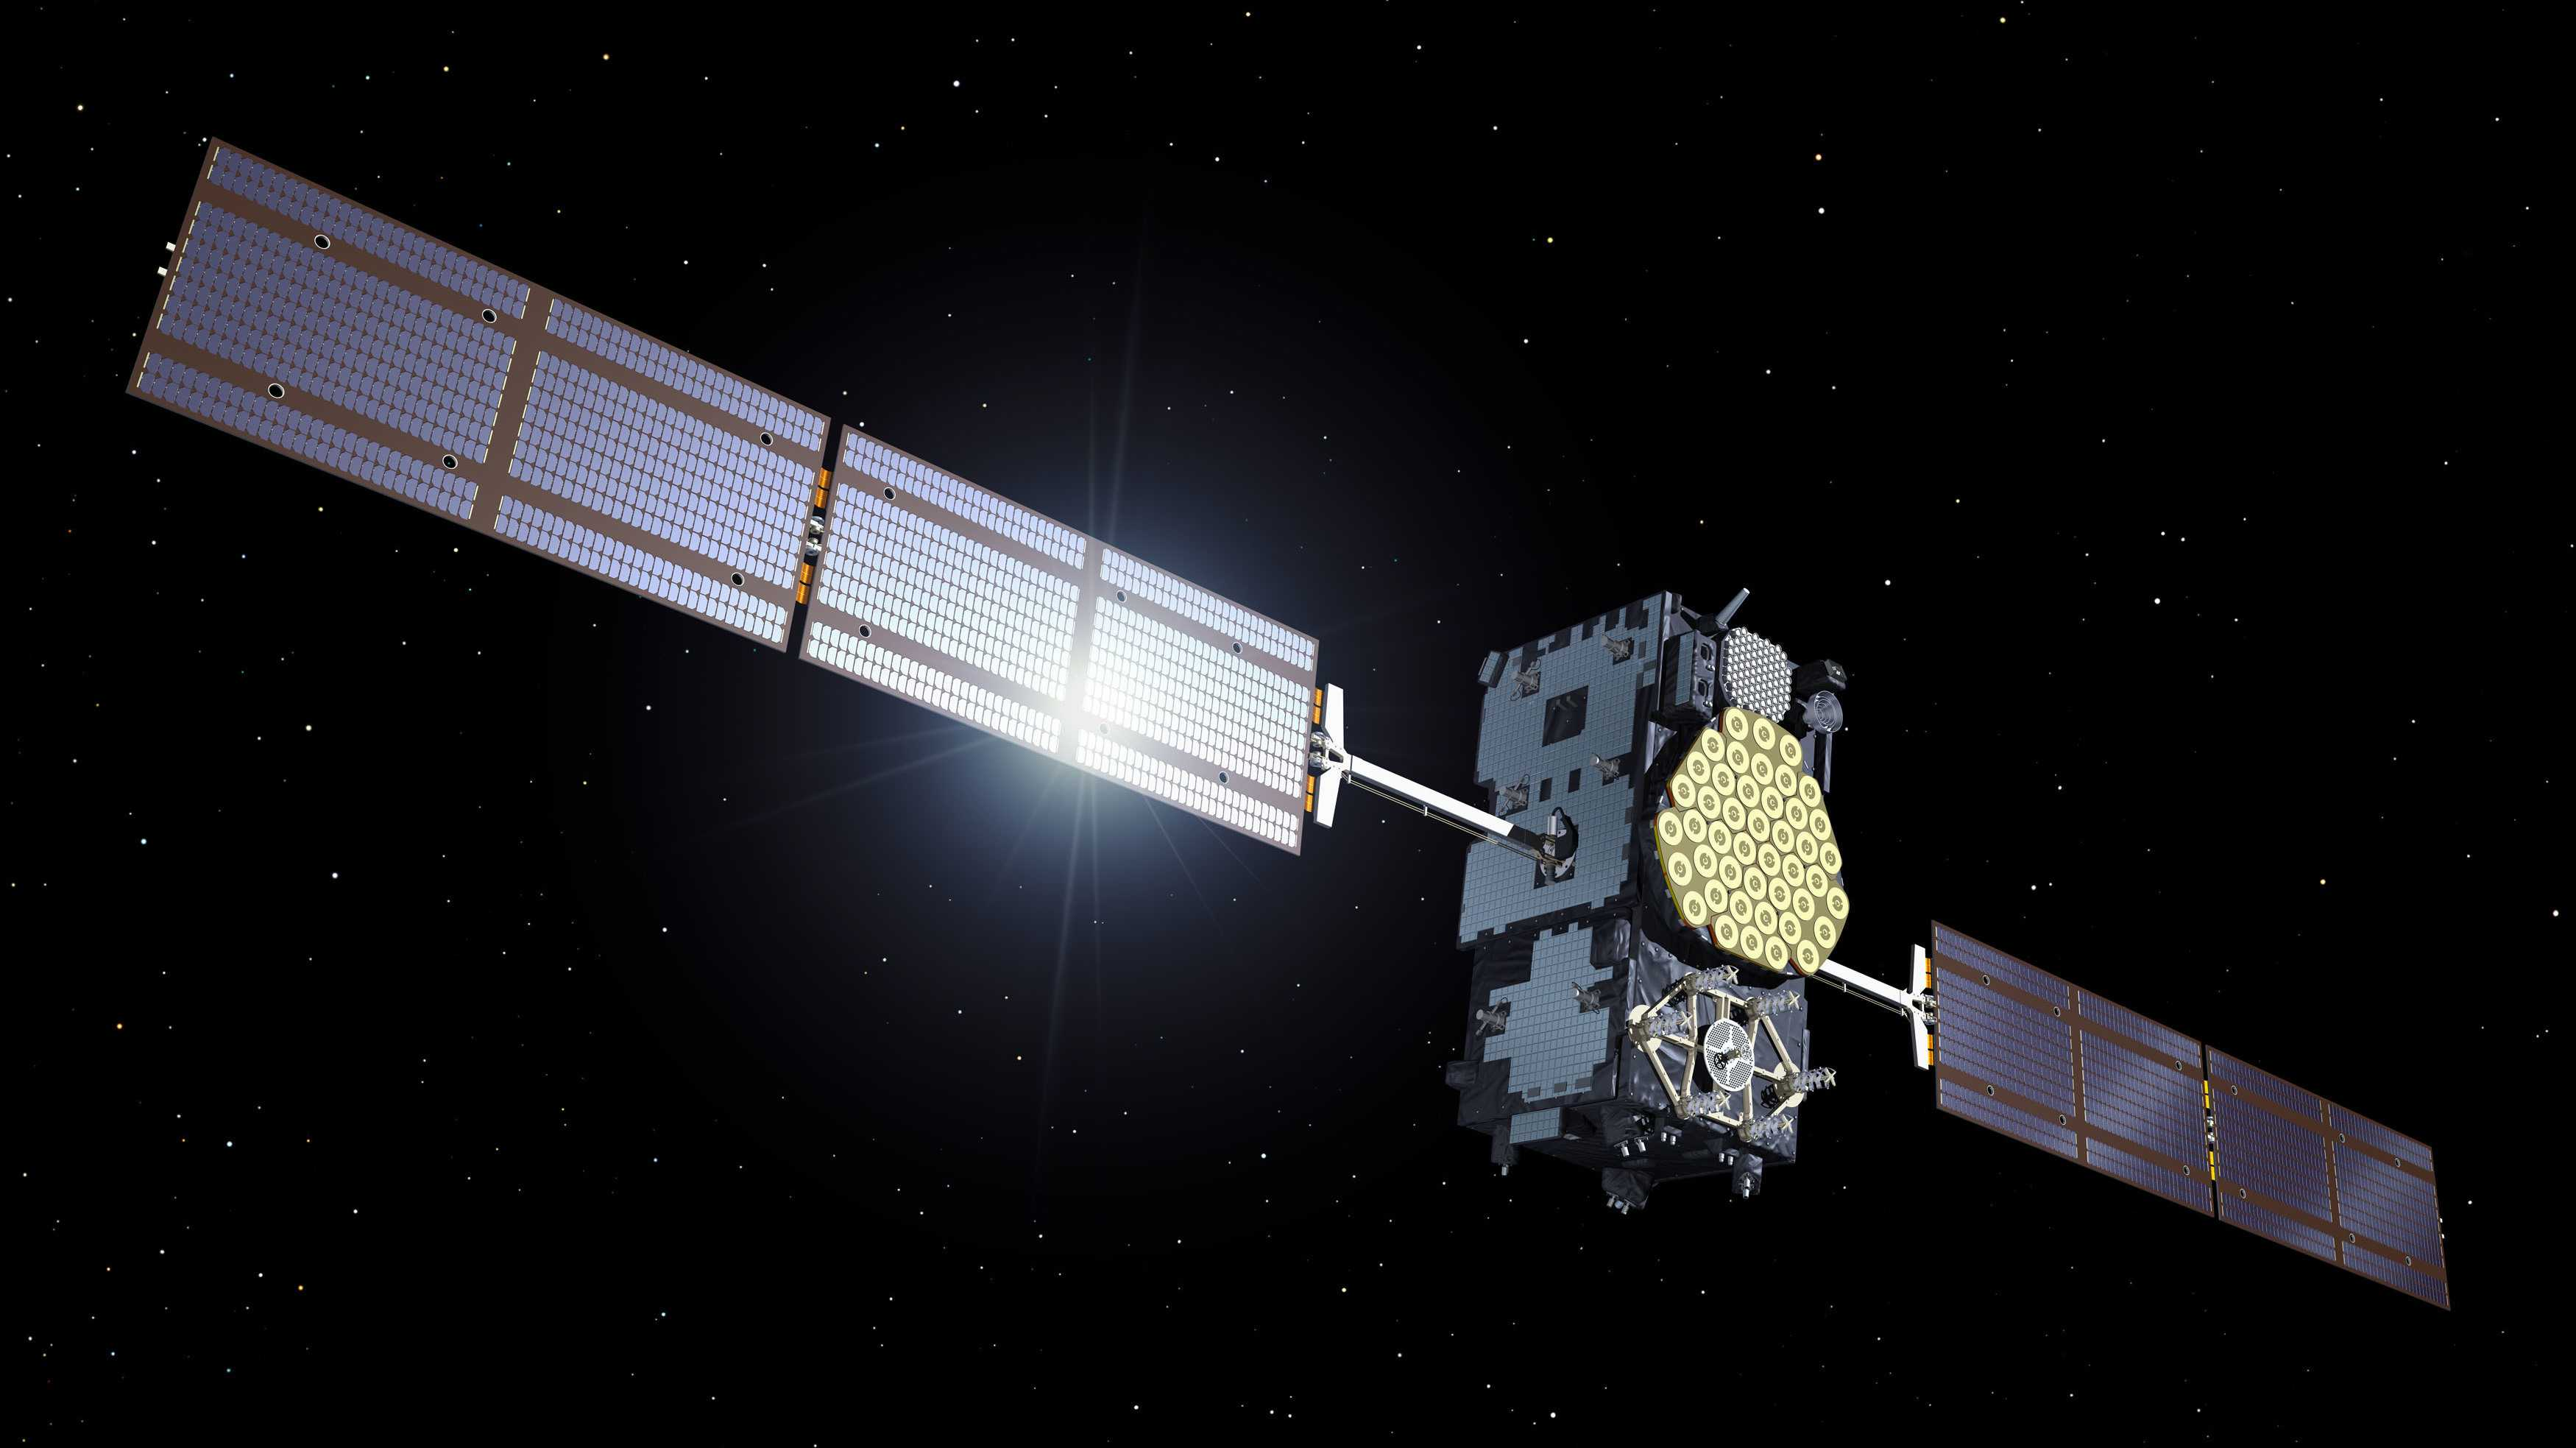 Galileo-Satellit im Orbit